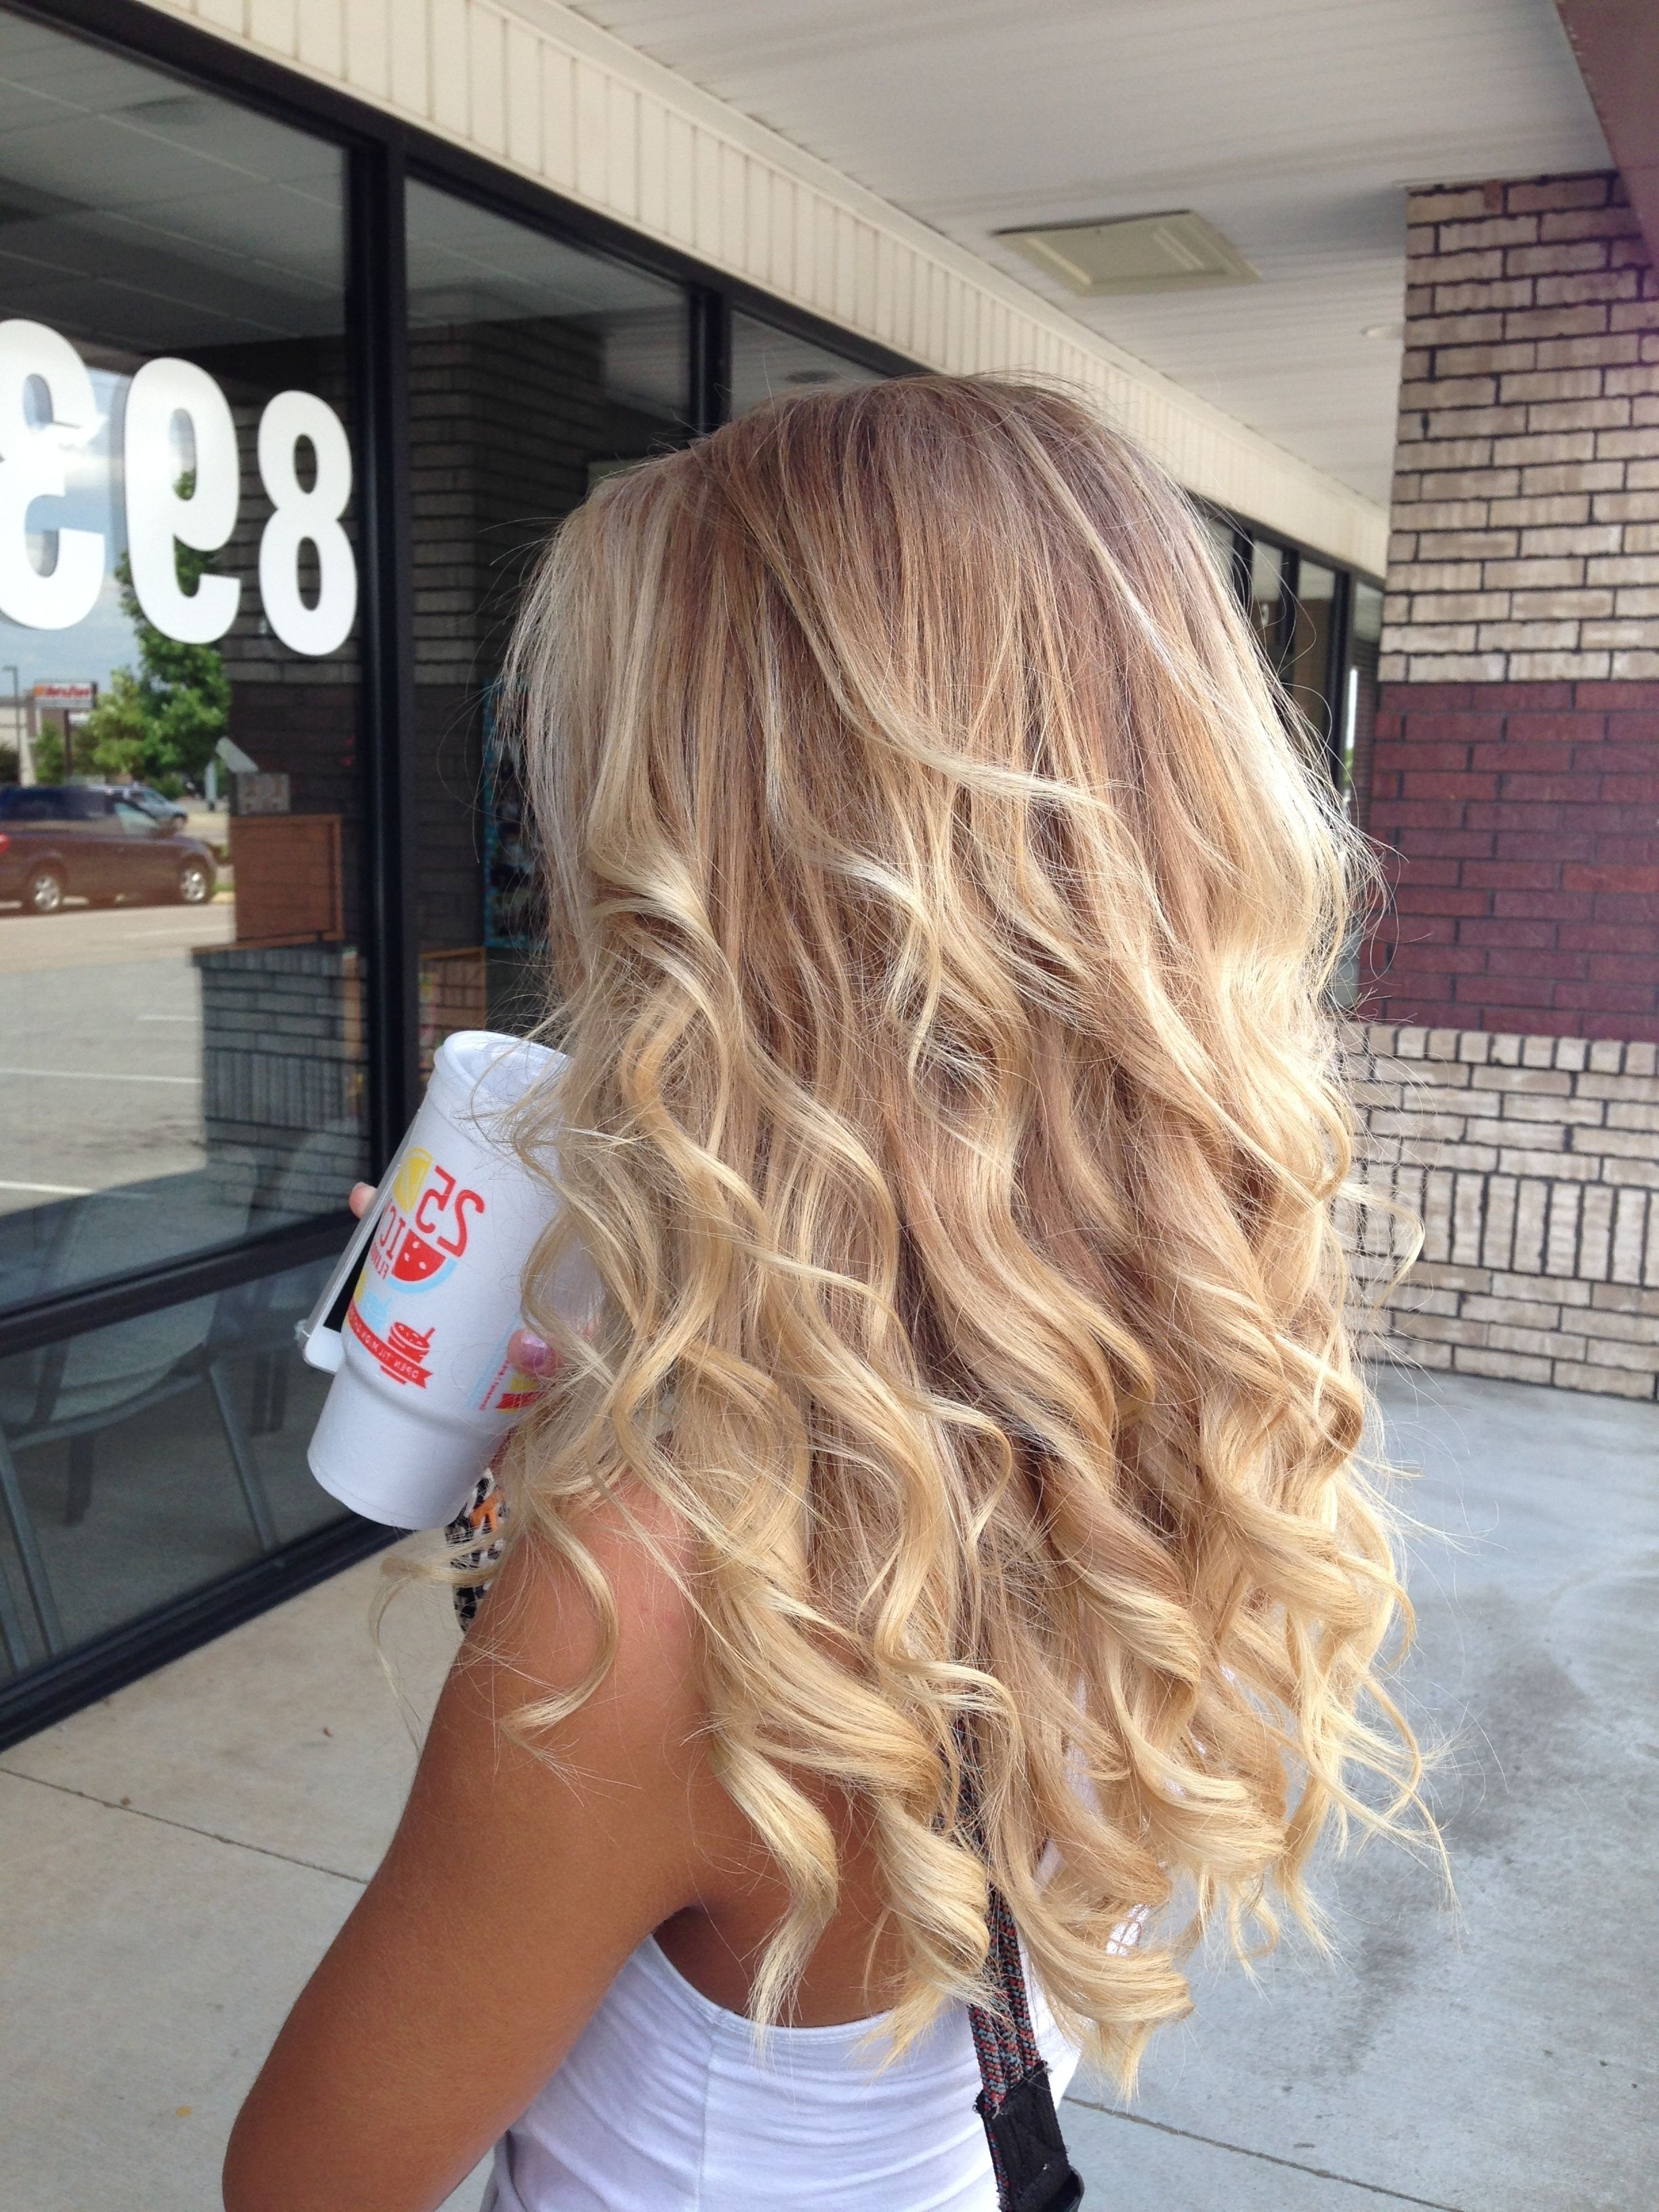 2017 Soft Flaxen Blonde Curls Hairstyles With Regard To Love My New Hair! Balayage Blonde (View 2 of 20)